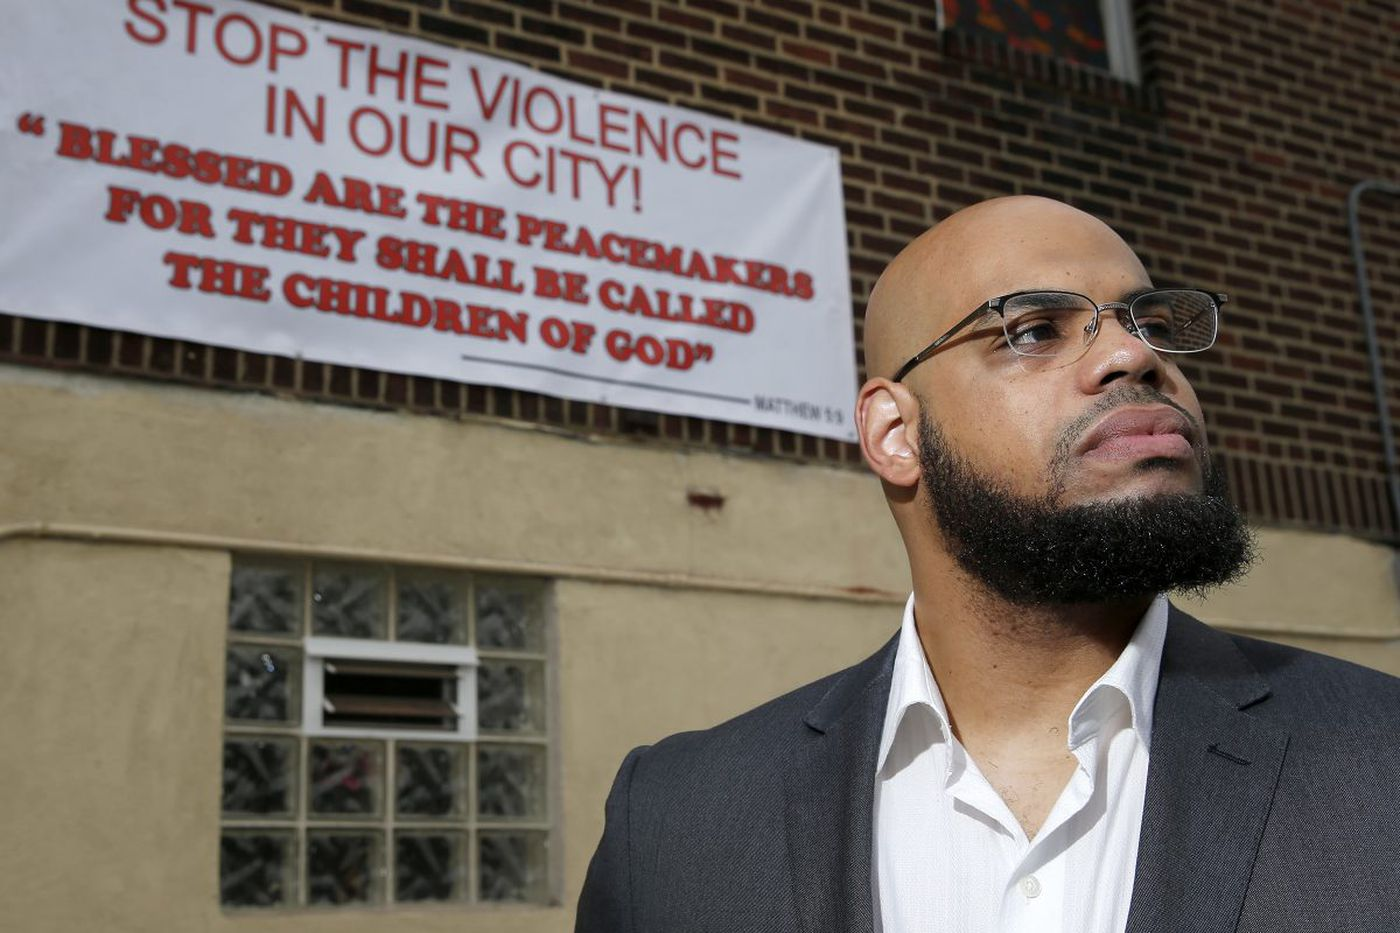 Must go after straw buyers to reduce gun violence in Philly